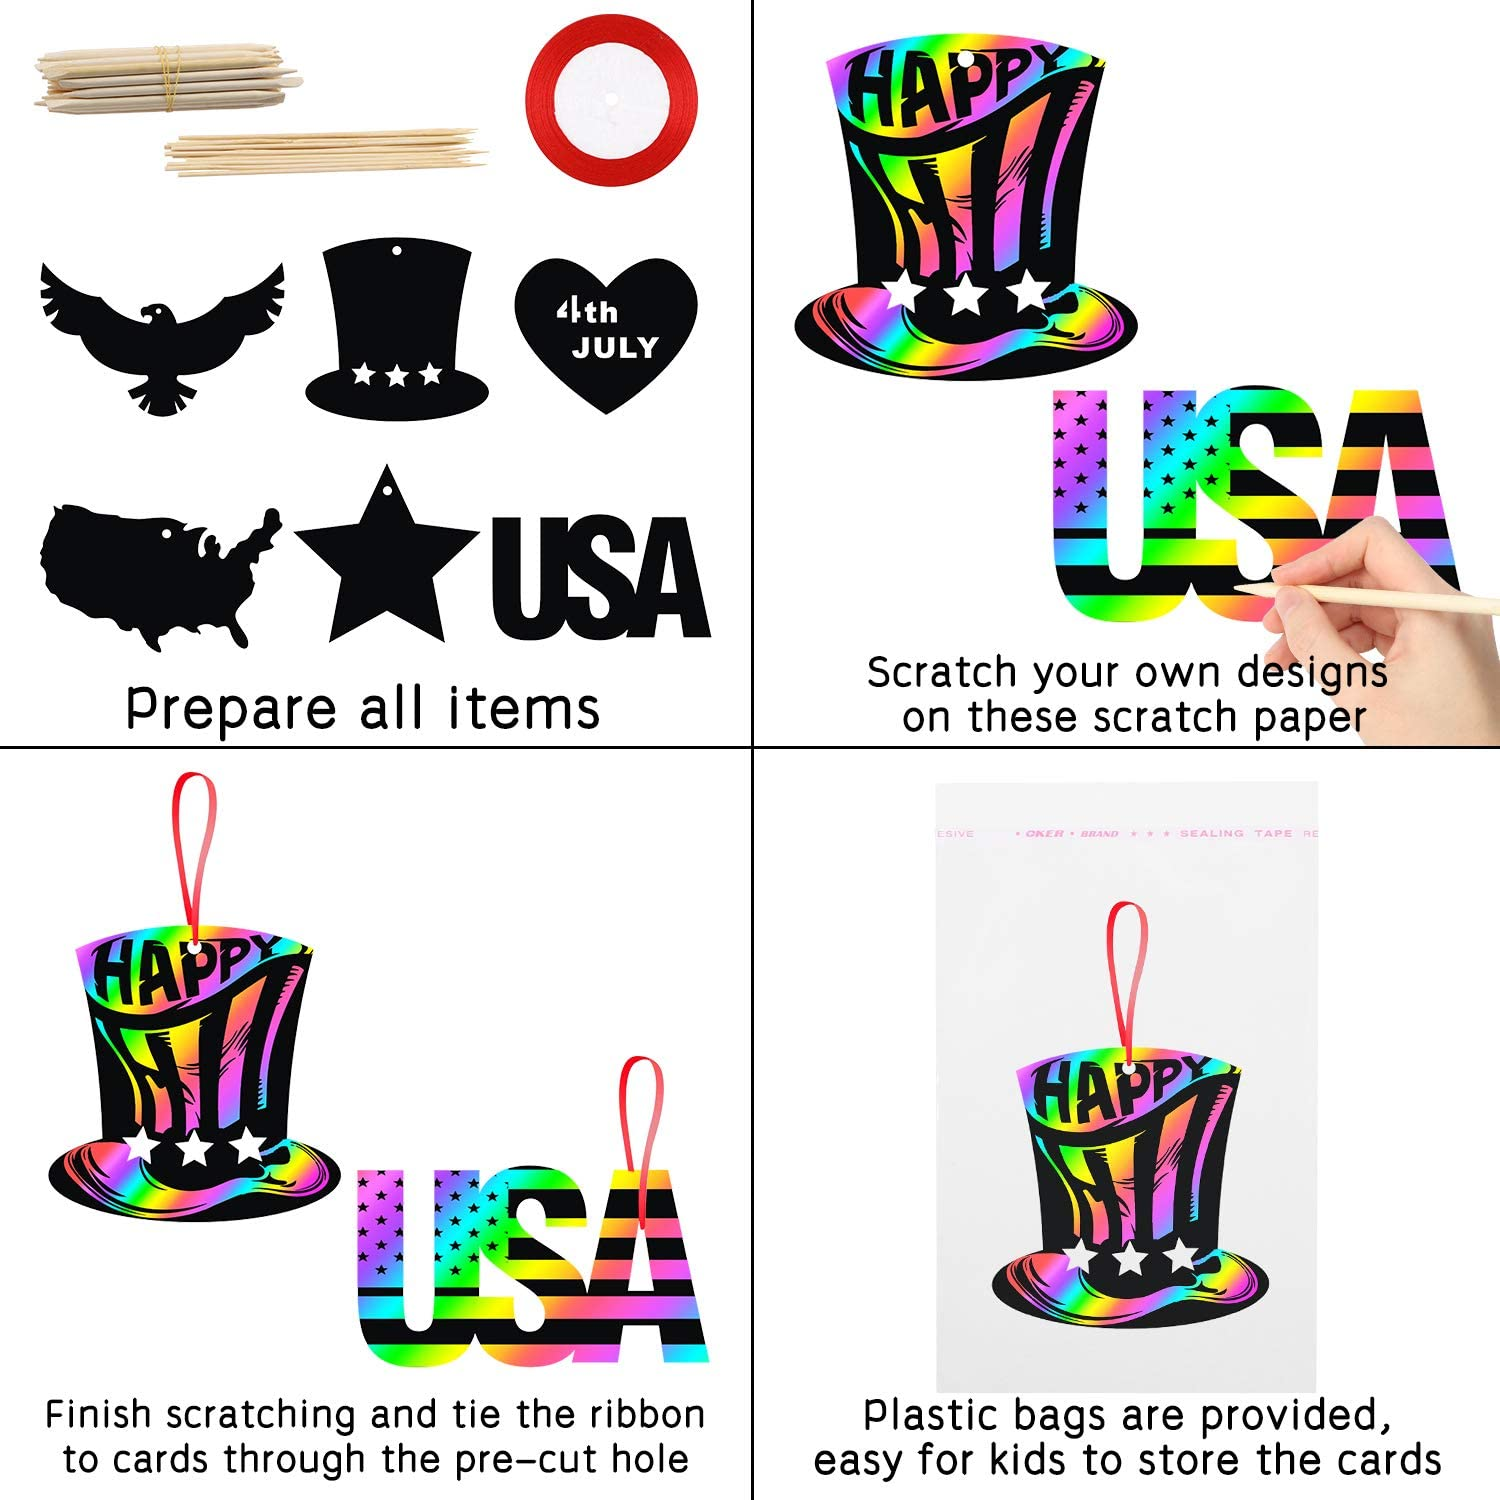 Magic Art Rainbow Color DIY Craft Kit for Kids 4th of July Birthday Party Favors Independence Day Party Supplies Game for Boys Girls Patriotic Decorations WATINC 60Pcs Patriotic Scratch Paper Cards